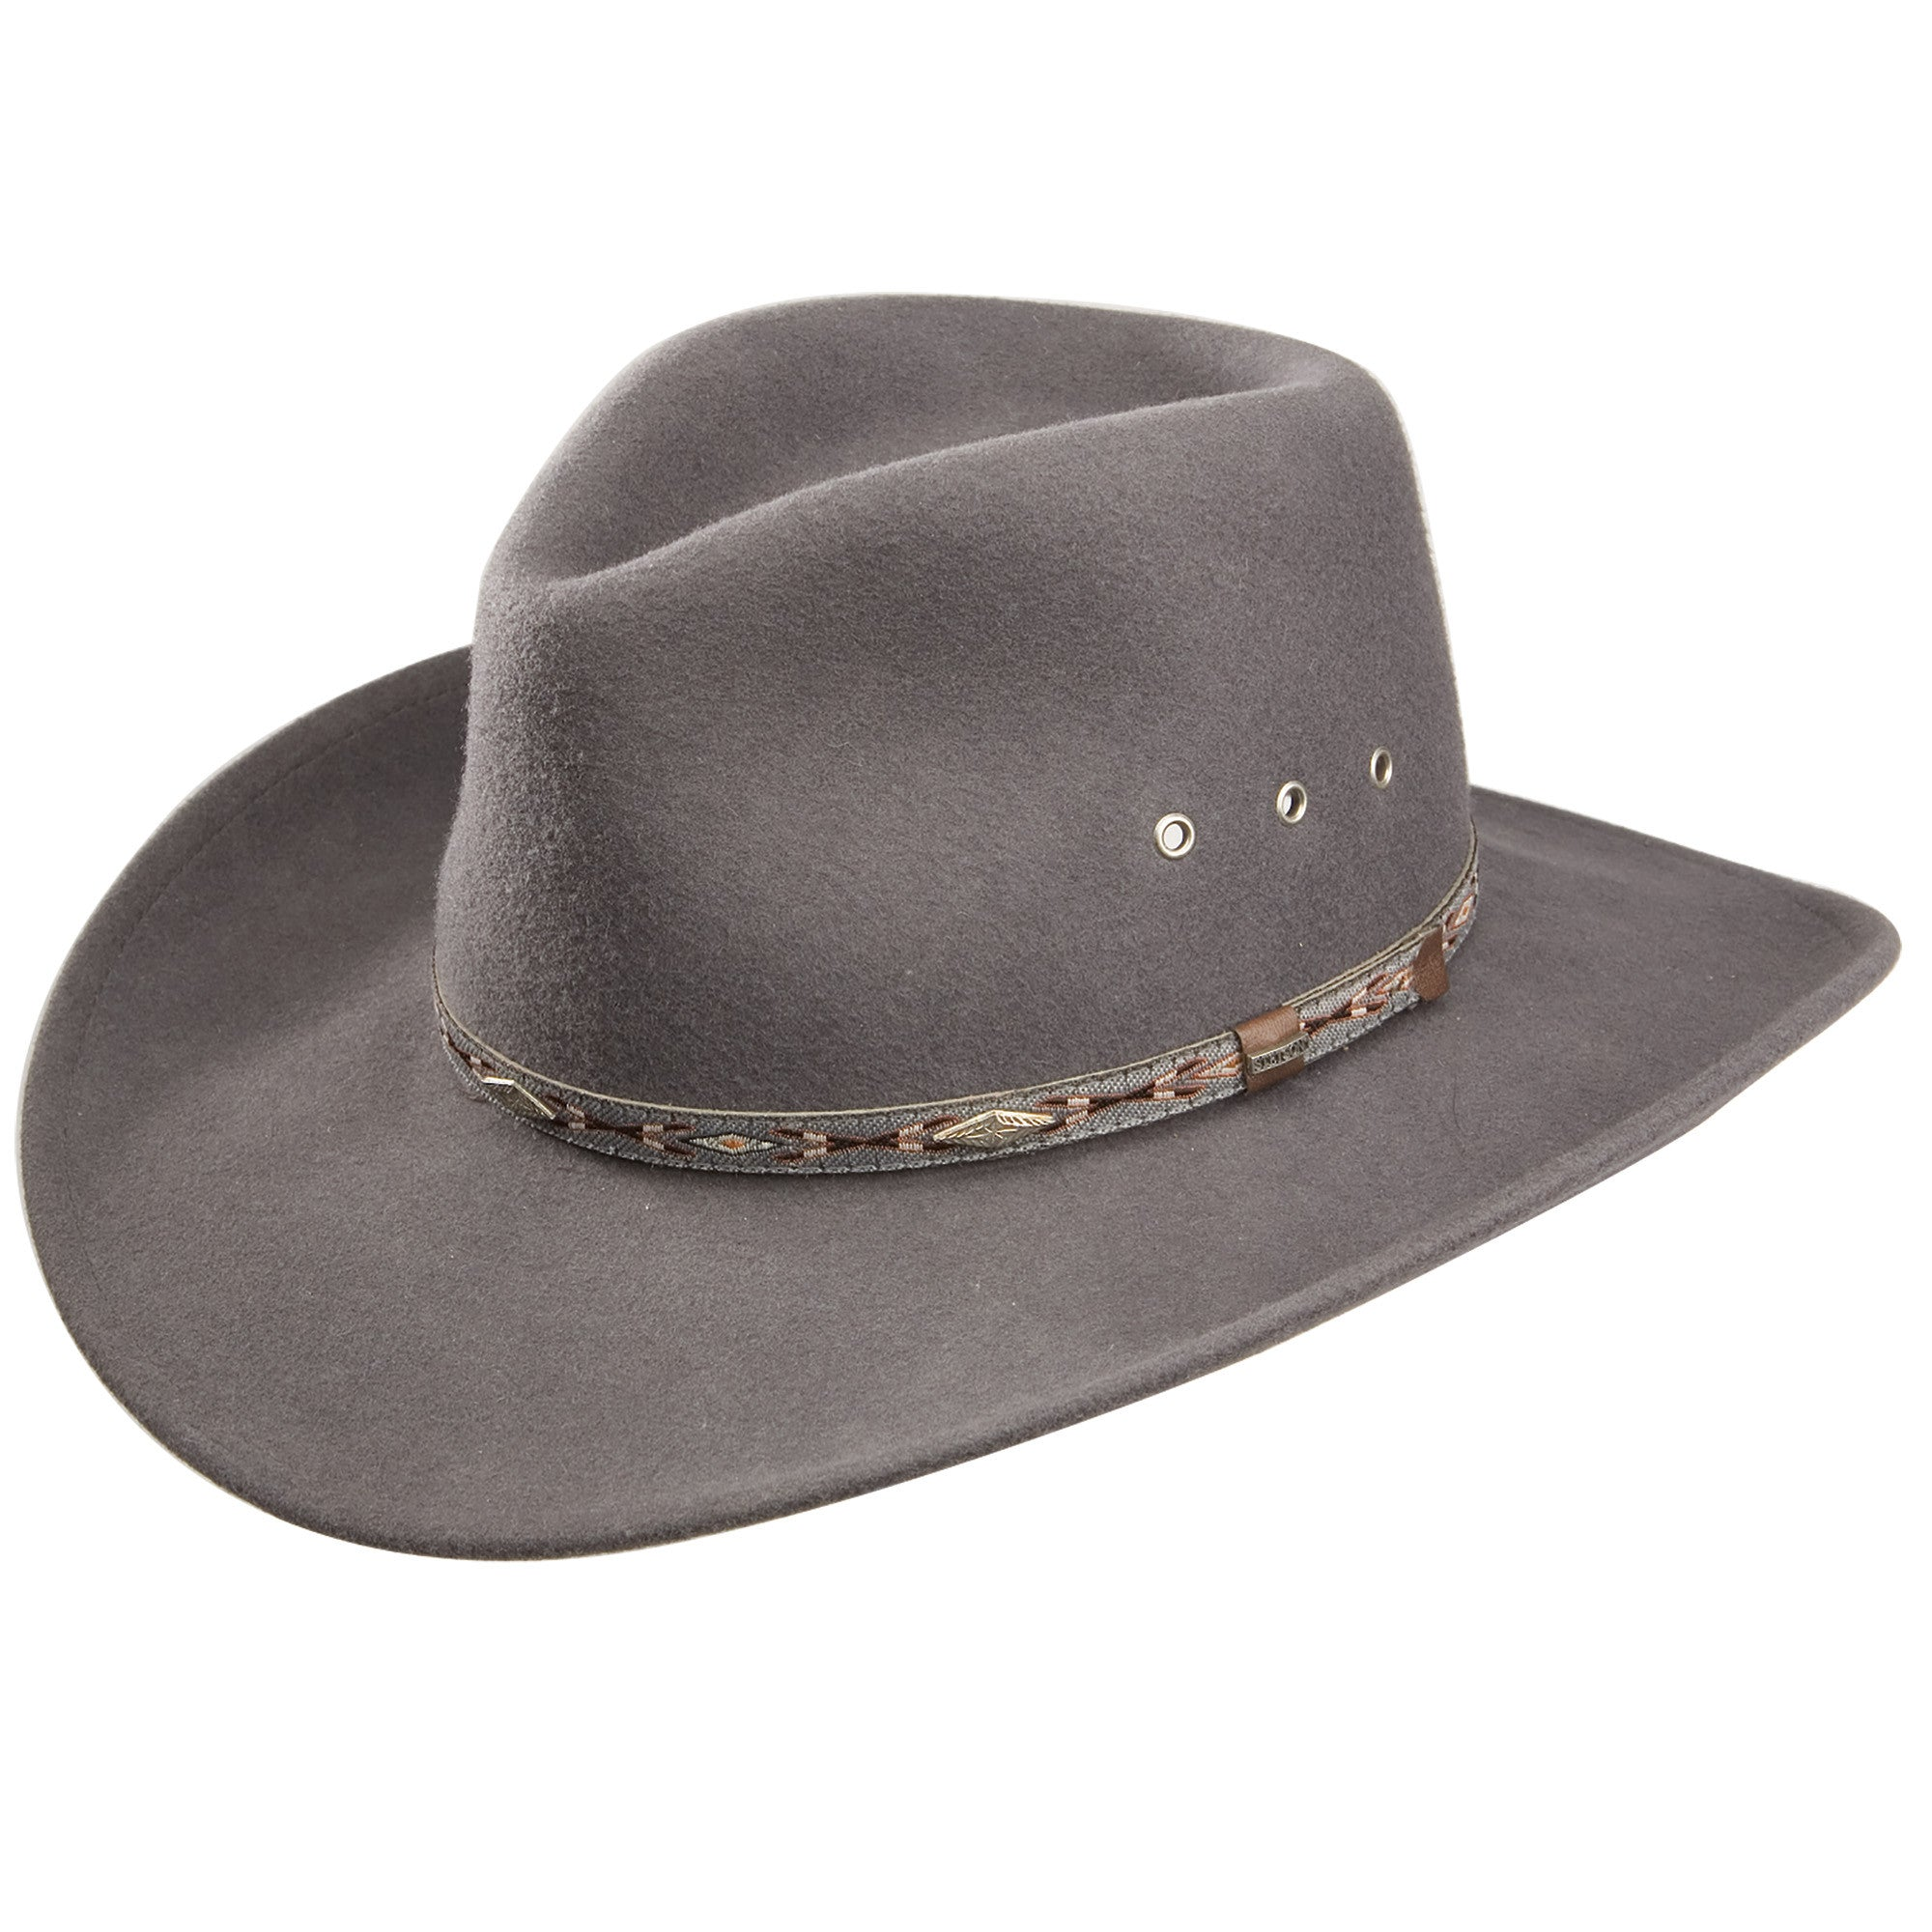 5a9c94edf Stetson Elkhorn Crushable Wool Hat #SWELKH-813285